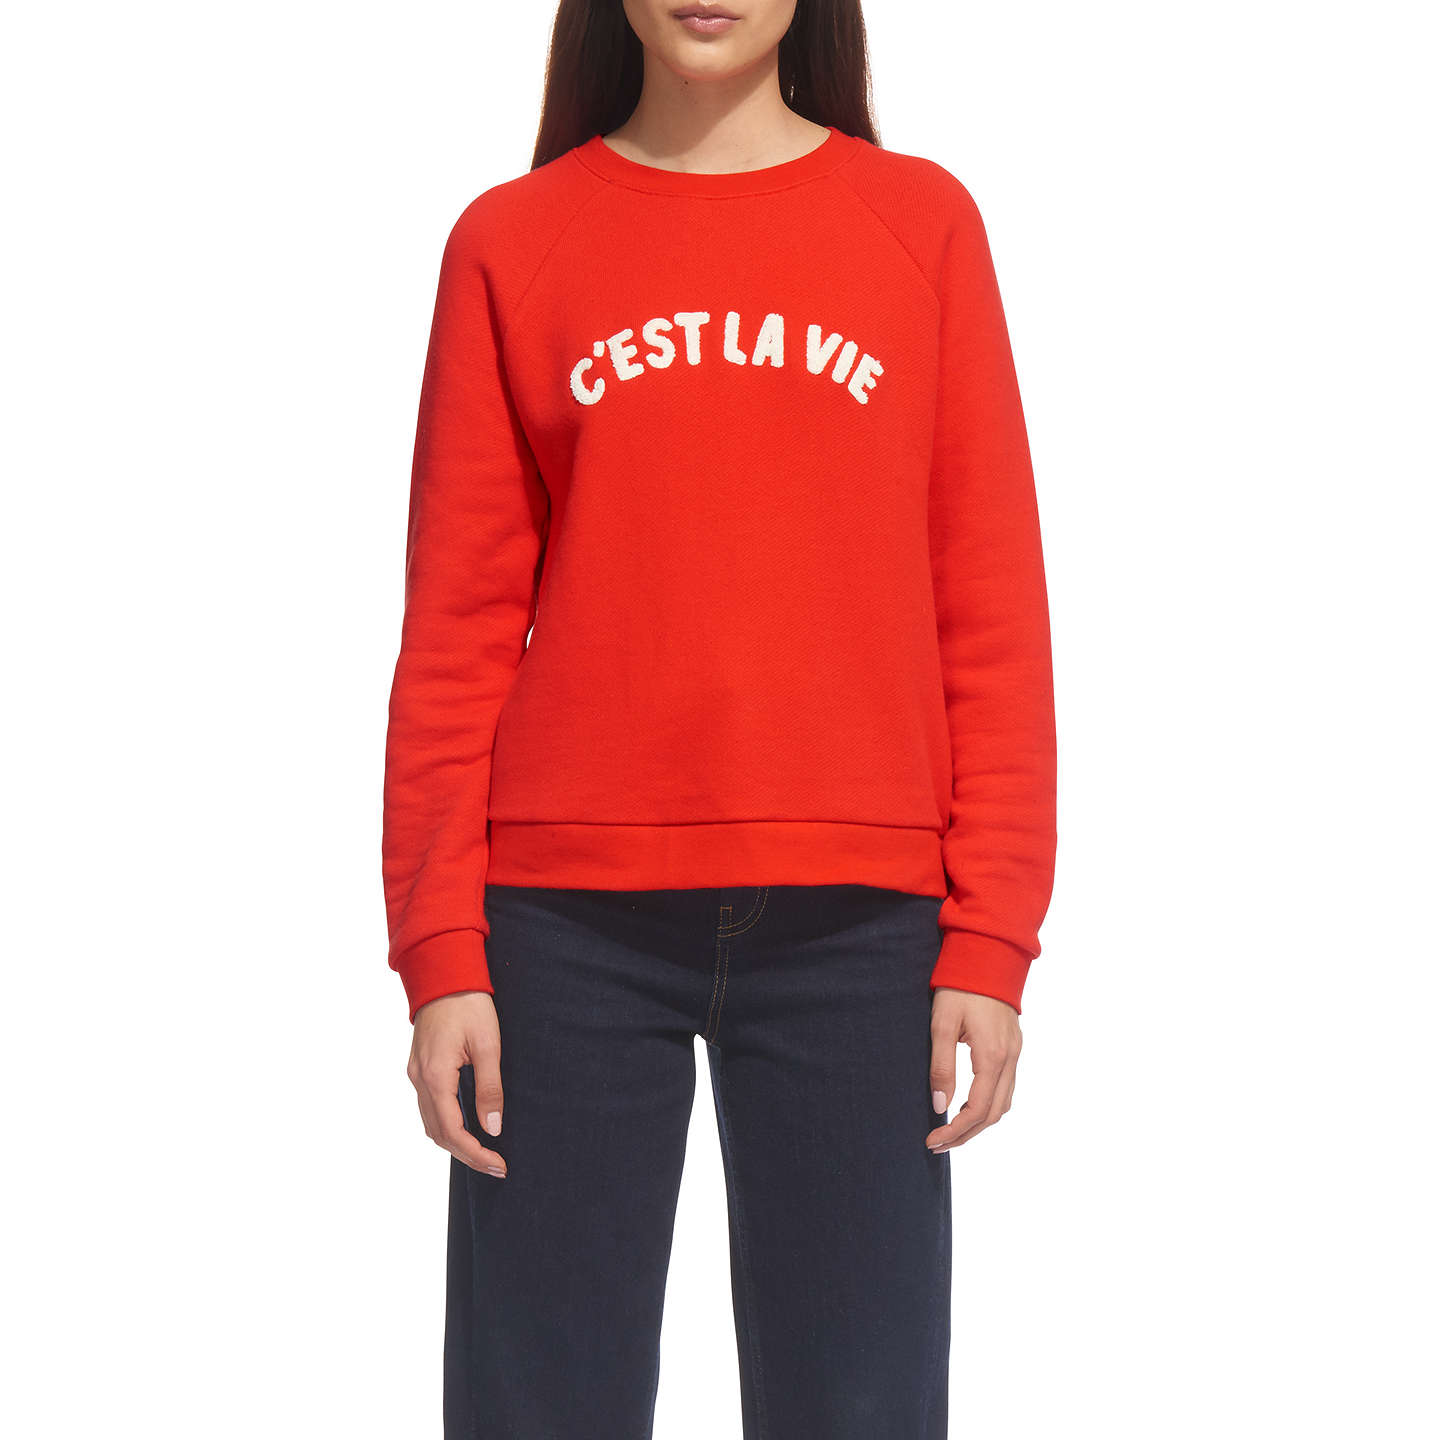 BuyWhistles C'est La Vie Sweater, Red, XS Online at johnlewis.com